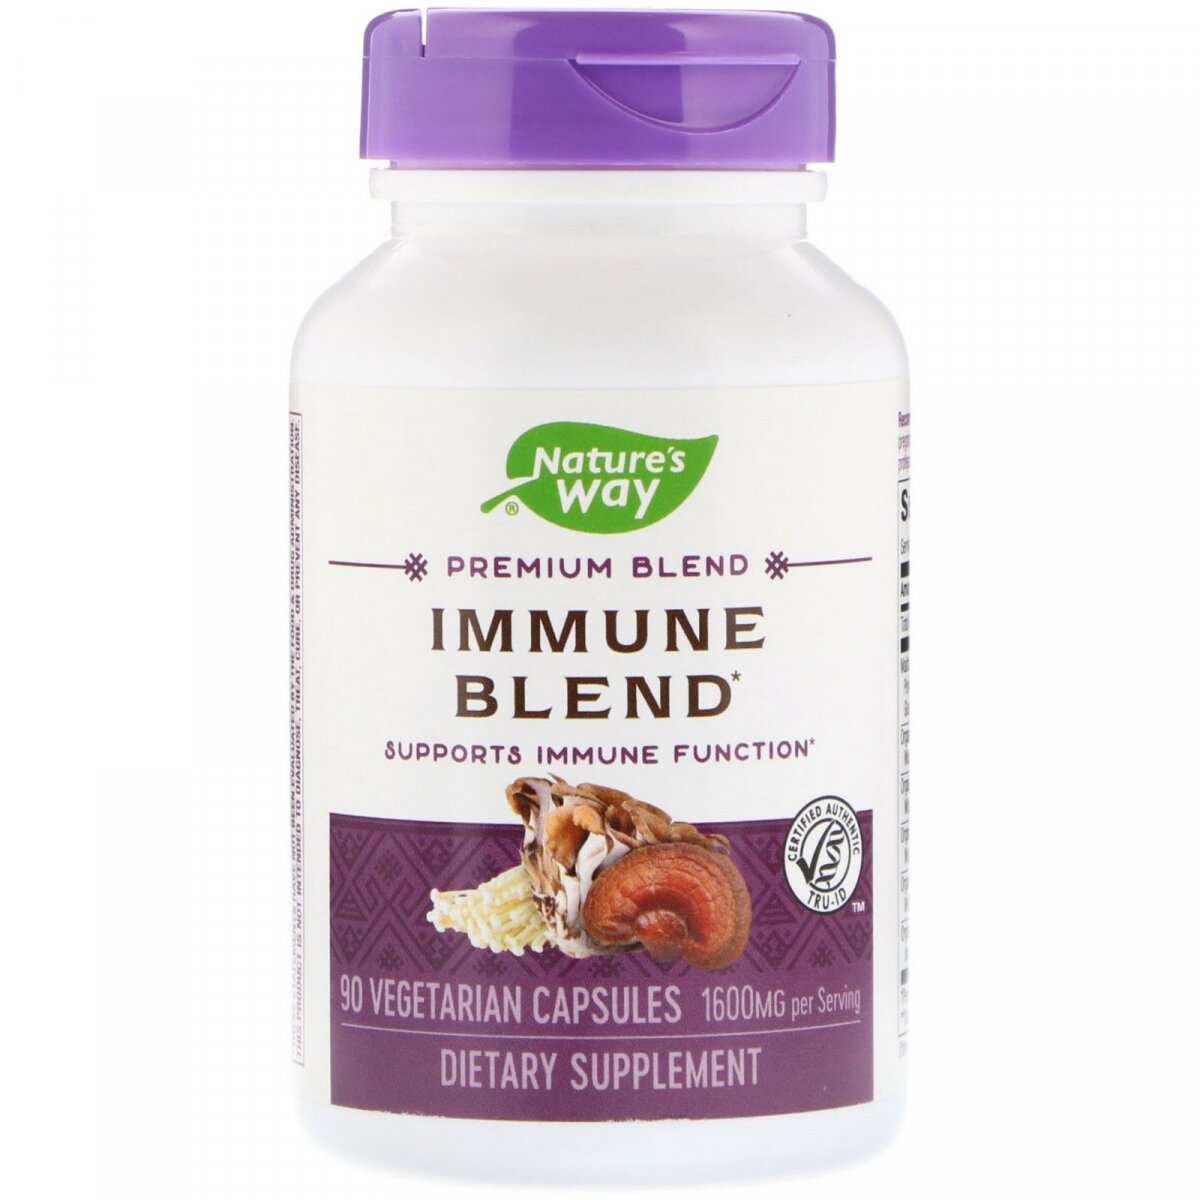 Иммунная смесь, Immune Blend, Nature's Way, 1600 мг, 90 вегетарианских капсул